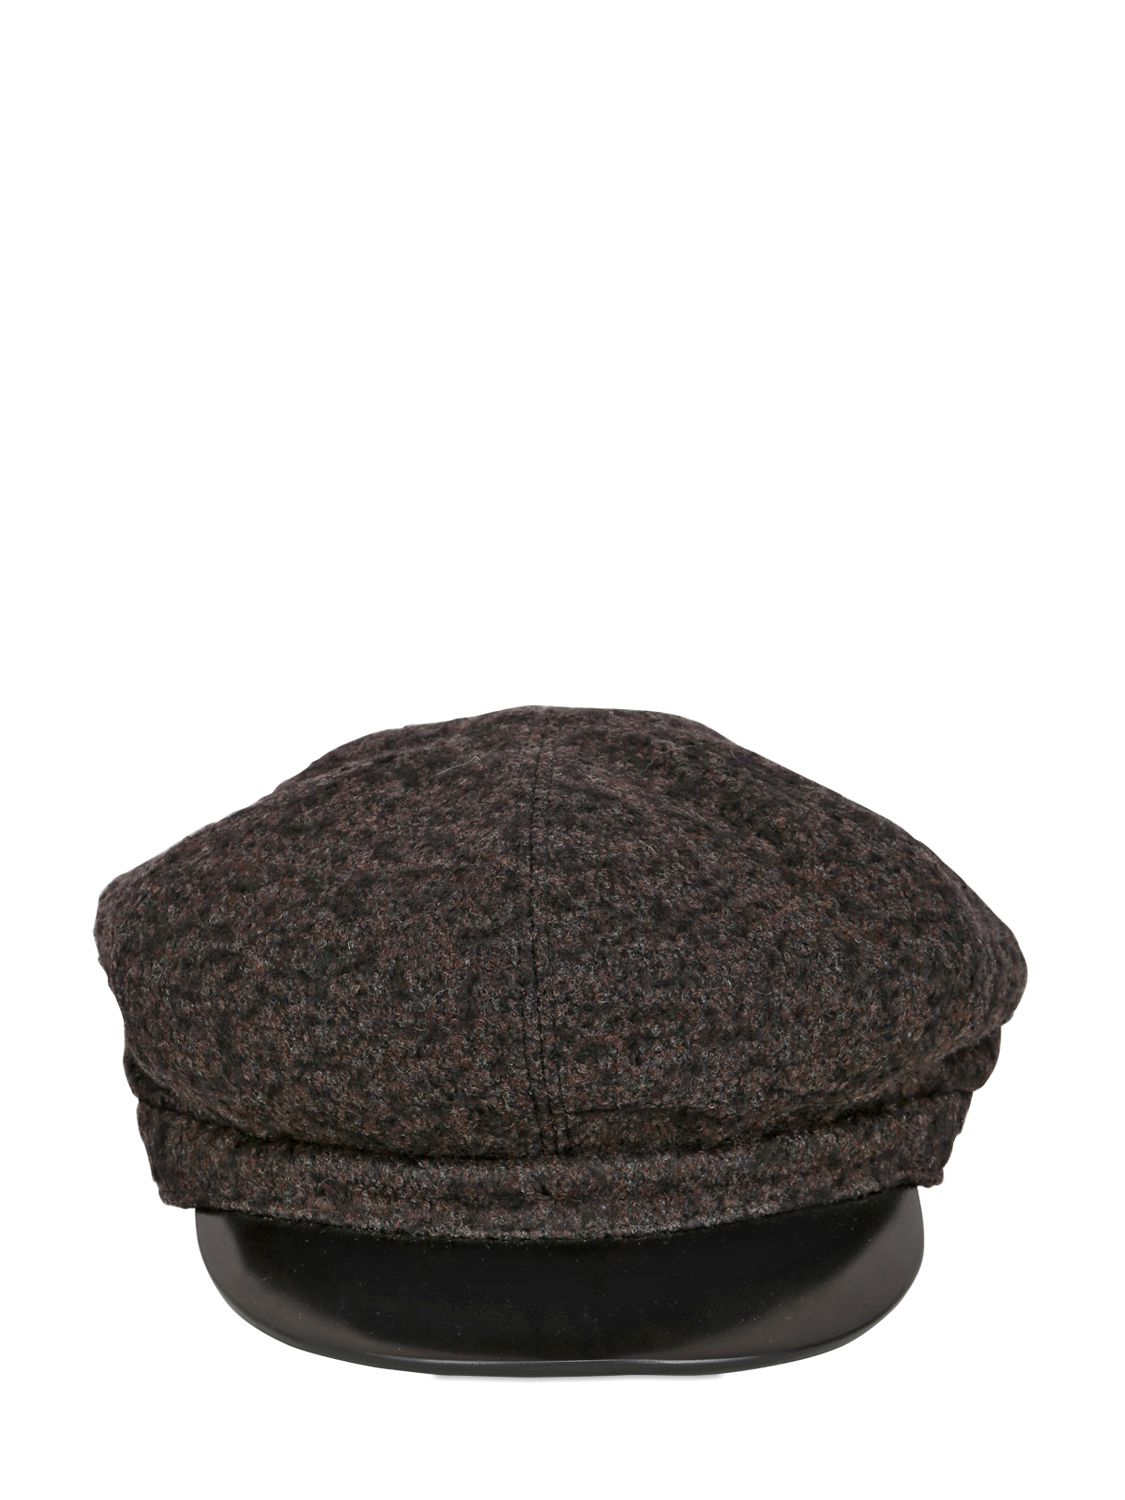 Lyst - SuperDuper Hats Wool Conductor Hat in Black for Men d0781bf0c085